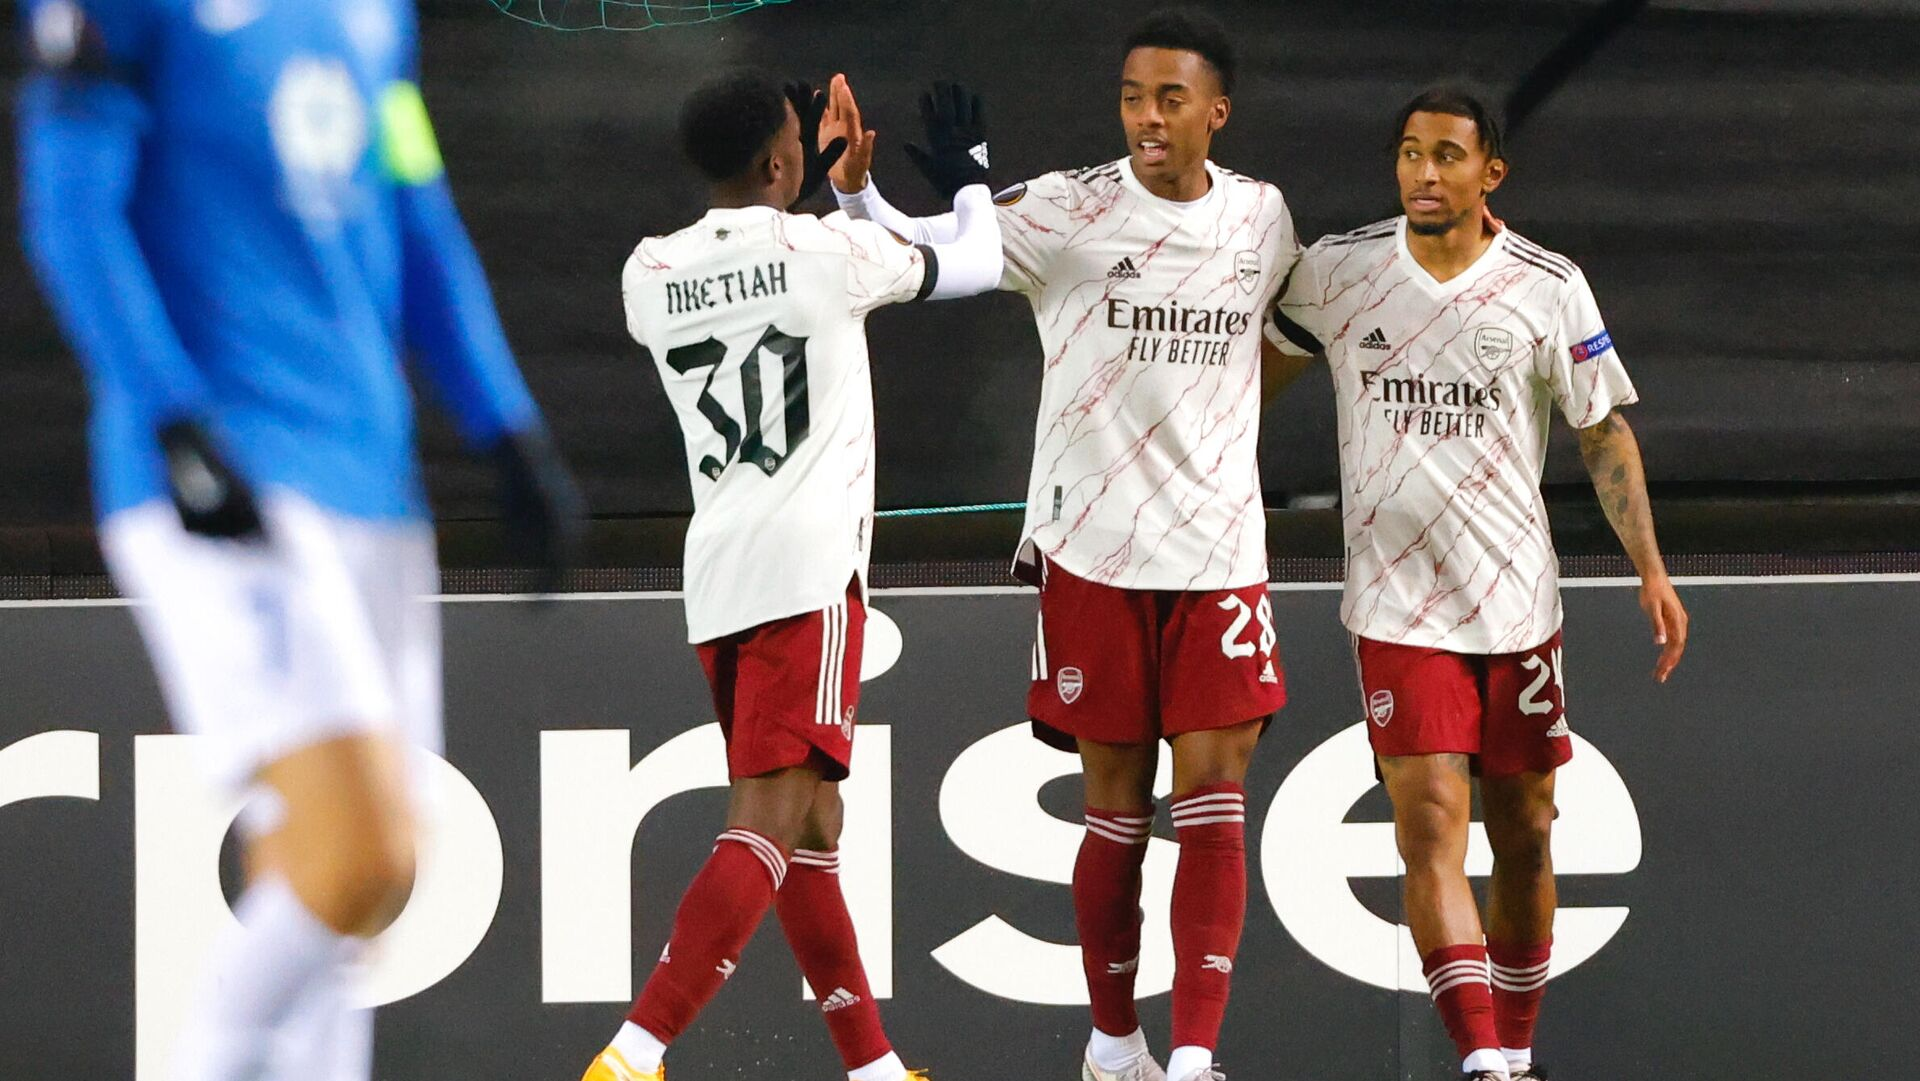 Arsenal's English midfielder Reiss Nelson (R) celebrates with Arsenal's English striker Eddie Nketiah (L) and Arsenal's English midfielder Joe Willock (R) after scoring the 0-2 during the UEFA Europa League group B football match  Molde v Arsenal in Molde, Norway on November 26, 2020. (Photo by Svein Ove Ekornesvеg / NTB / AFP) / Norway OUT - РИА Новости, 1920, 26.11.2020